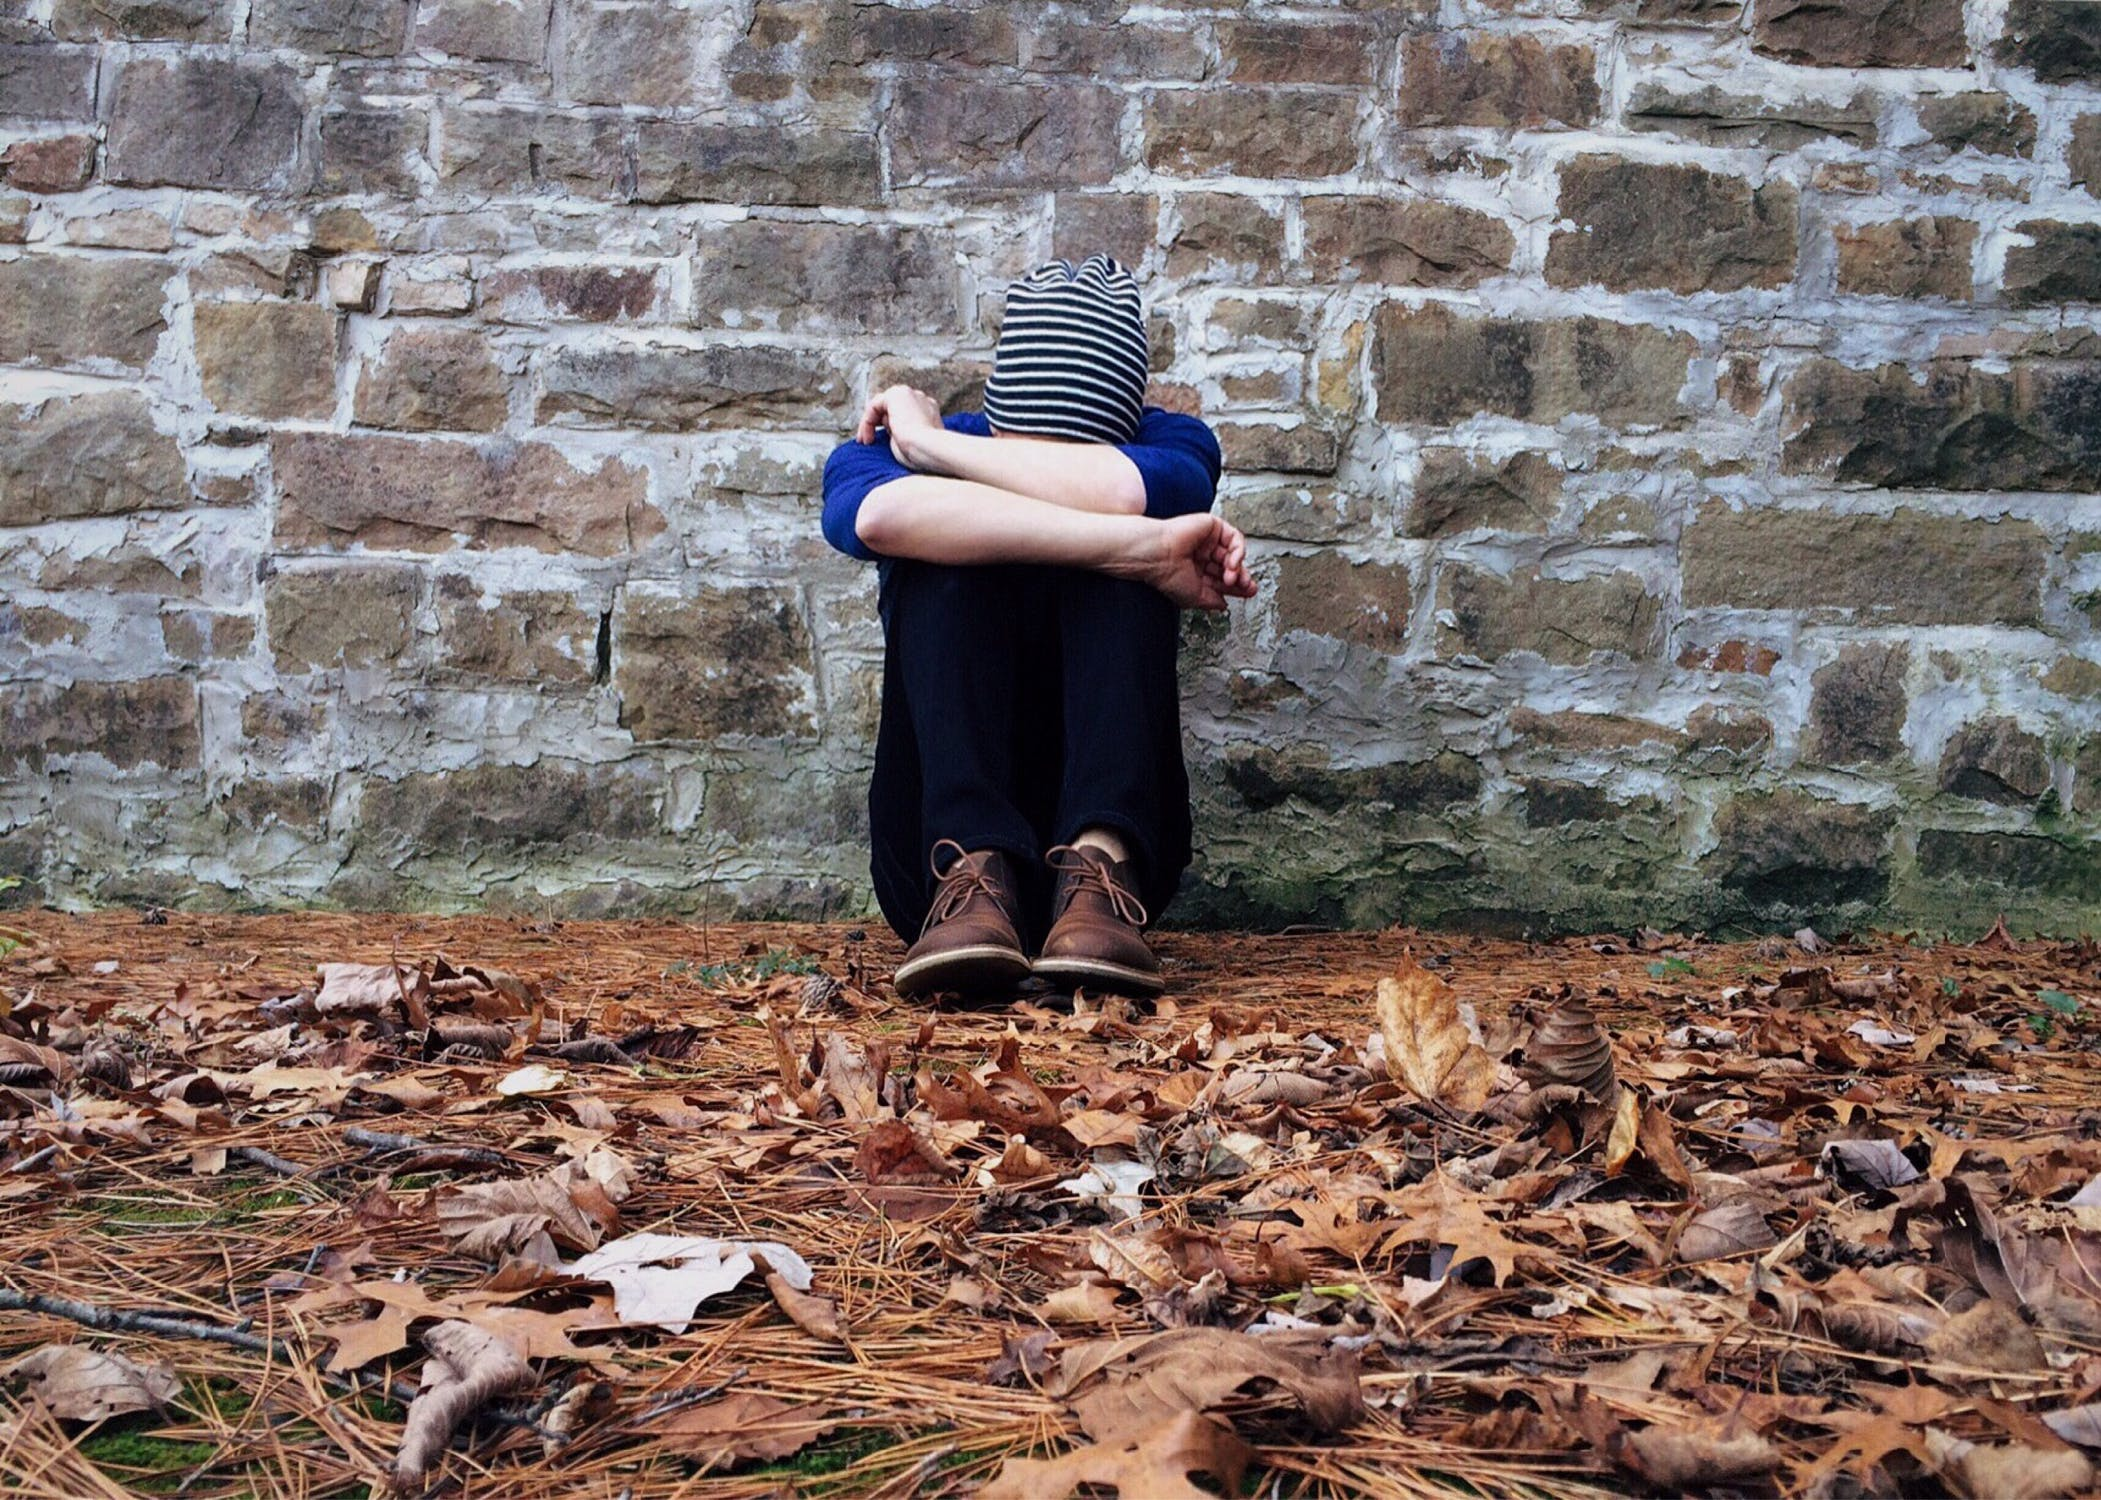 A person sitting against a wall with their head tucked between their knees